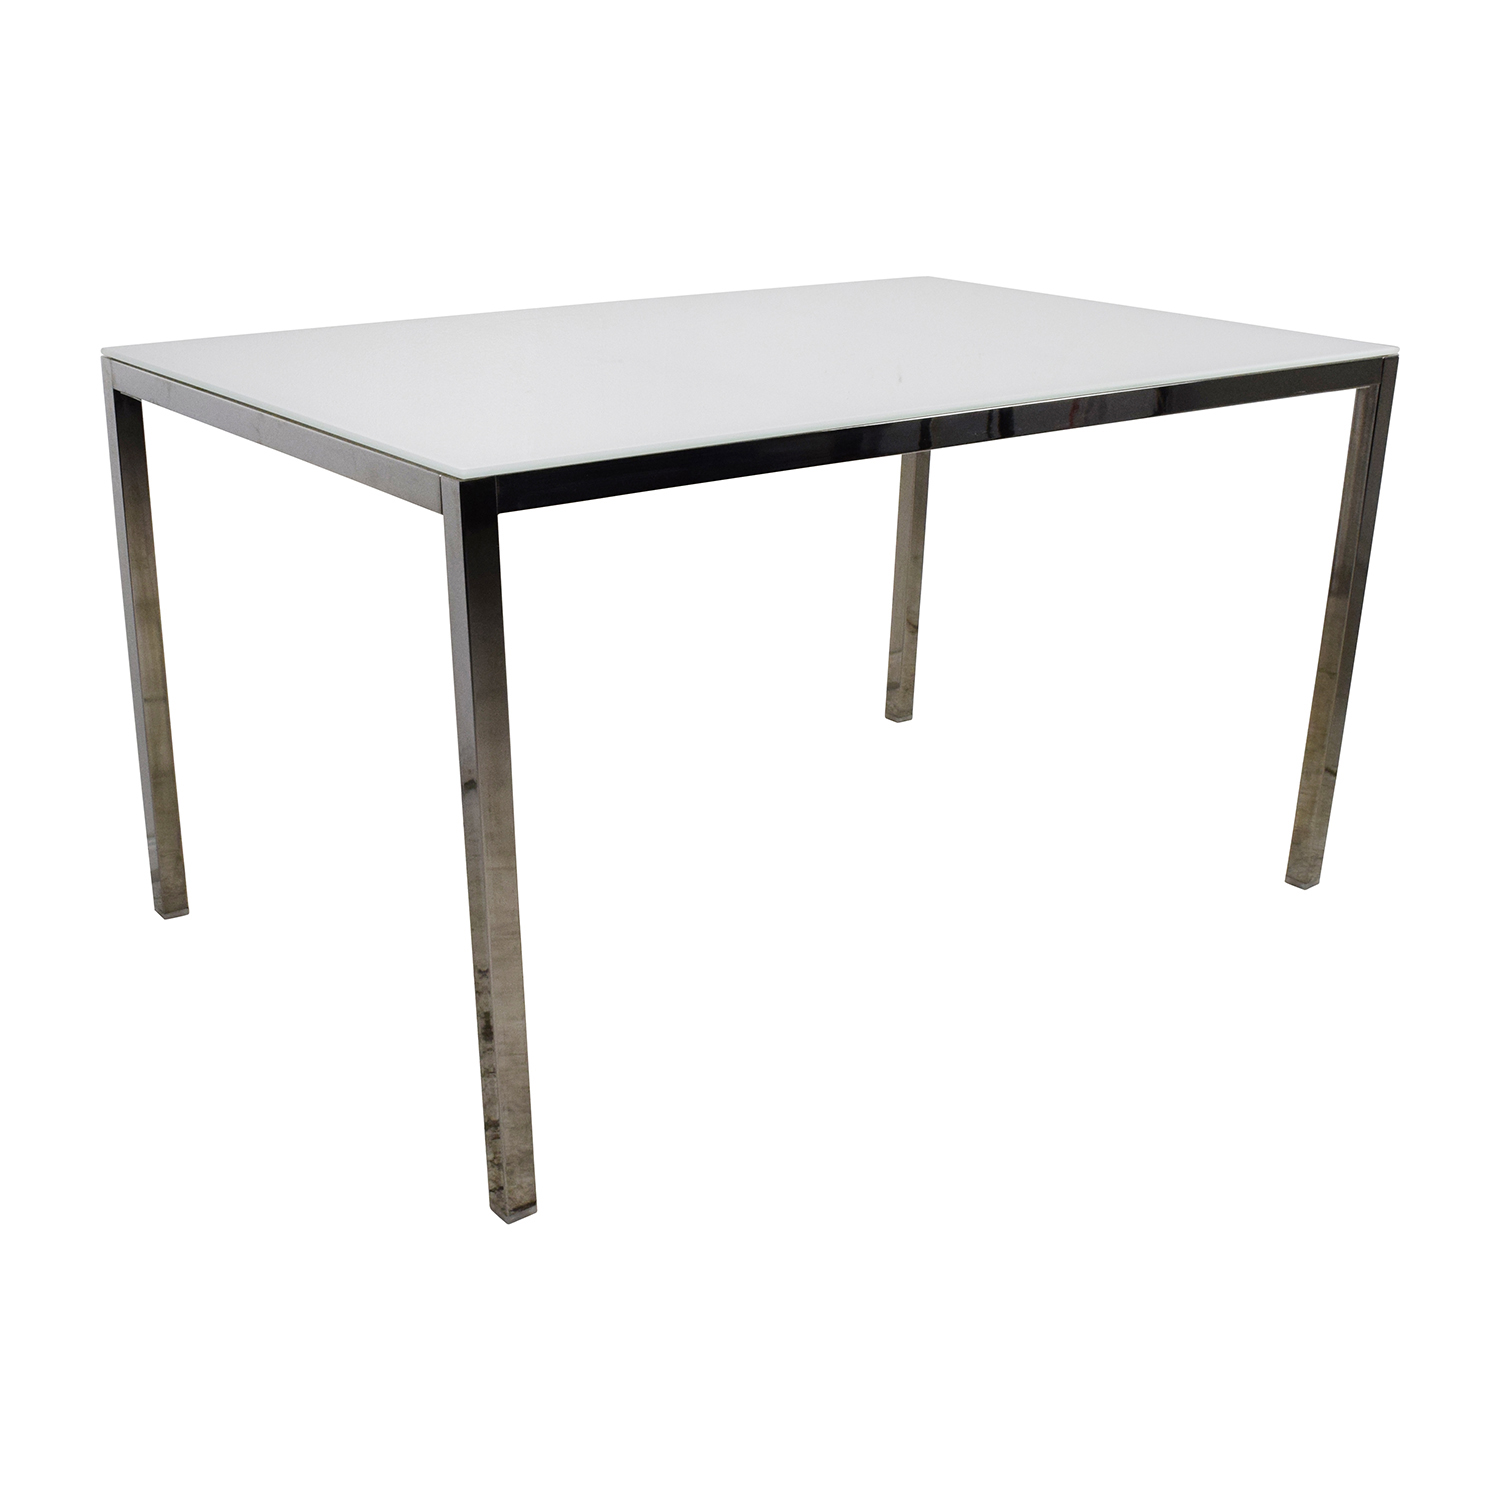 85 off ikea ikea torsby large glass top dining table for Large glass table top